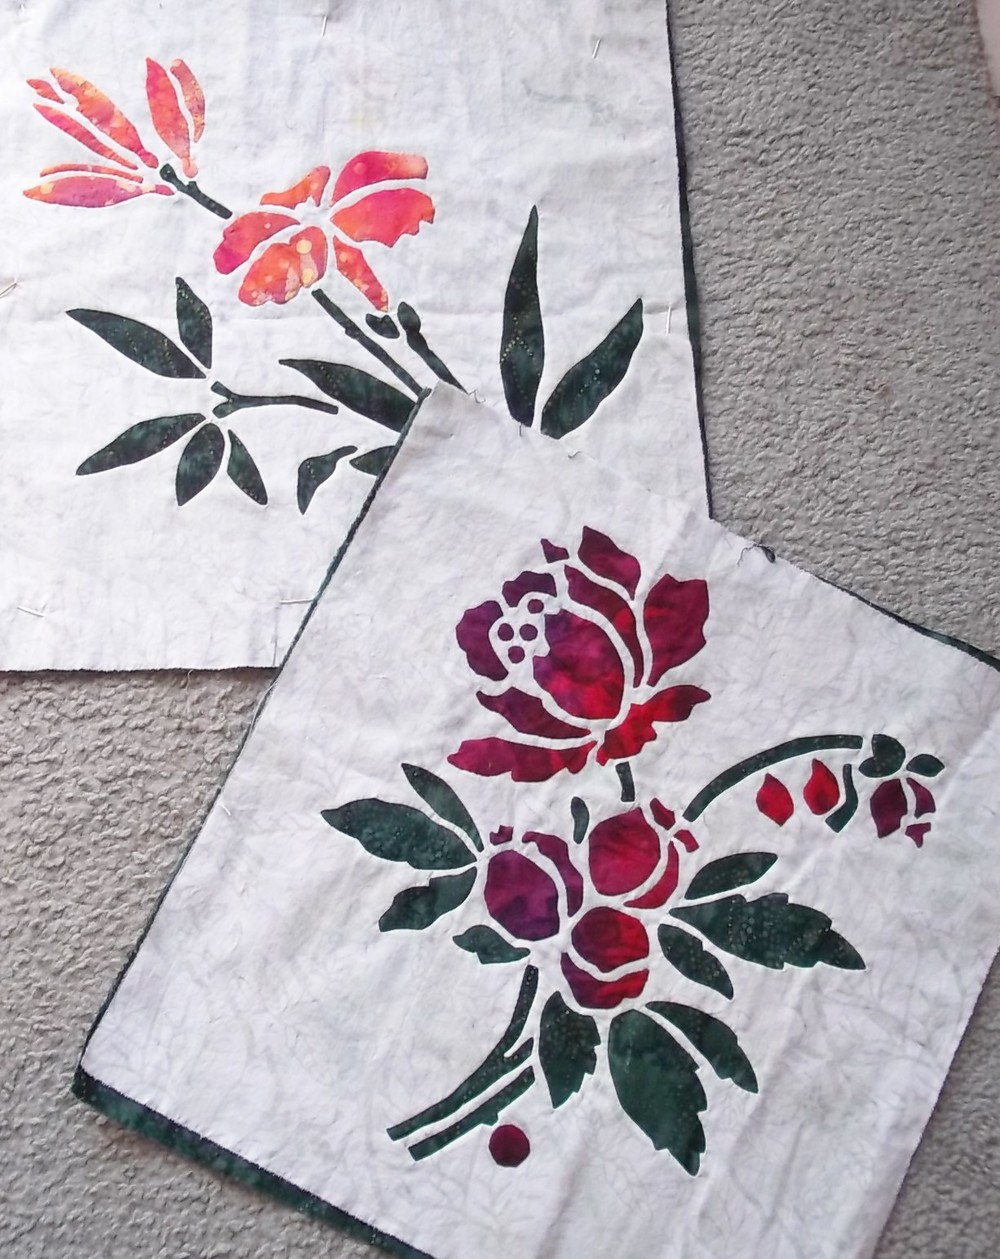 "Lily    ( 1 of 9),    Rose    (2 of 9). 16"" x 16"" blocks made with option 3: reverse applique stems and leaves with applique blossoms."